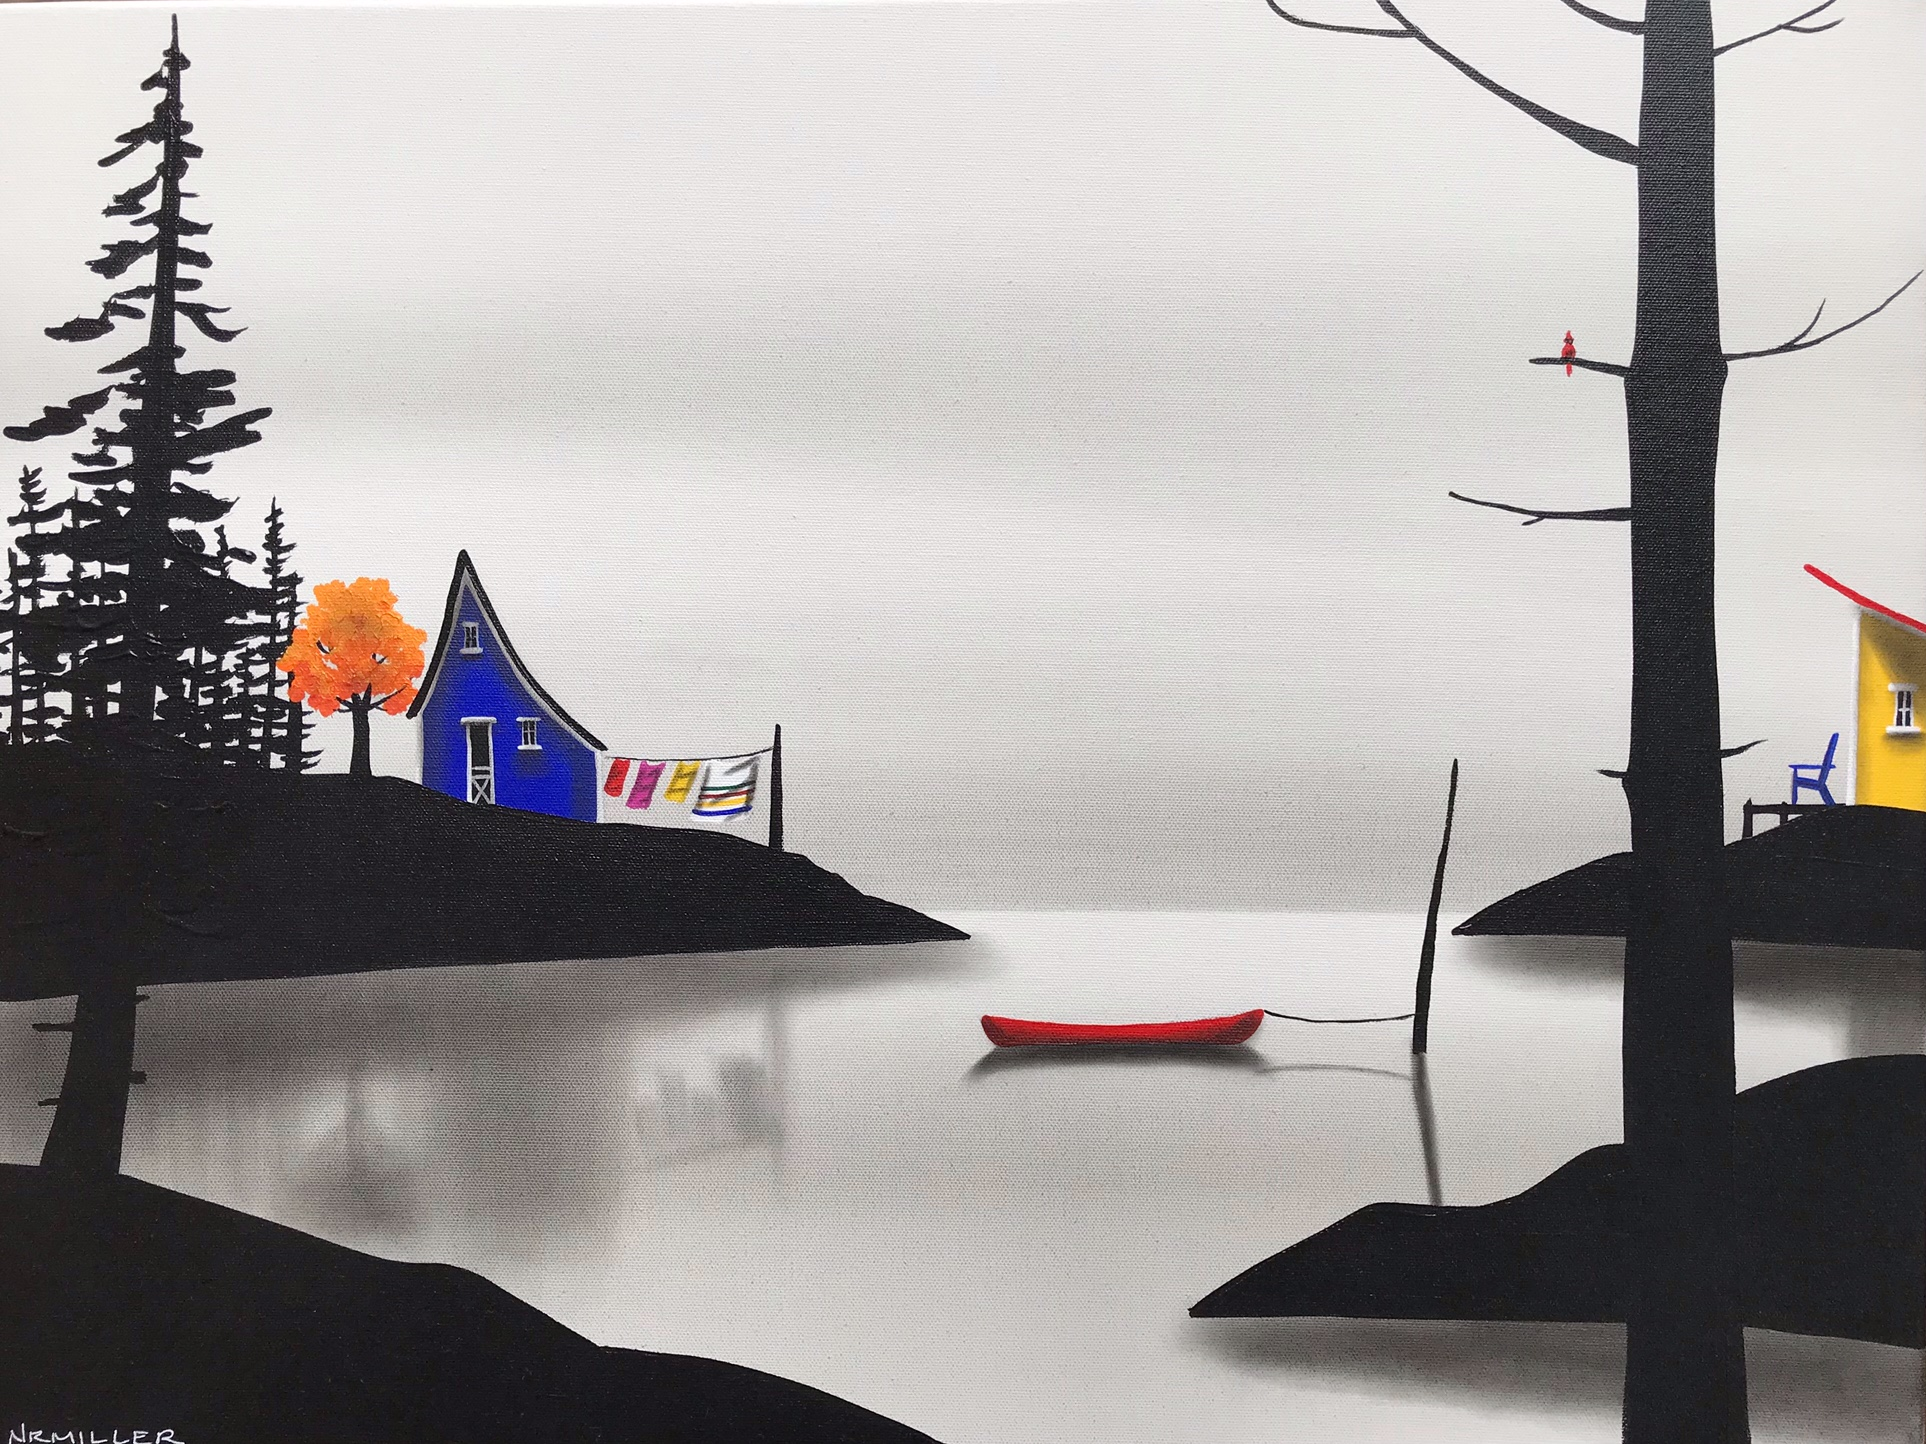 The Good Fight, mixed media landscape painting by Natasha Miller | Effusion Art Gallery + Glass Studio, Invermere BC